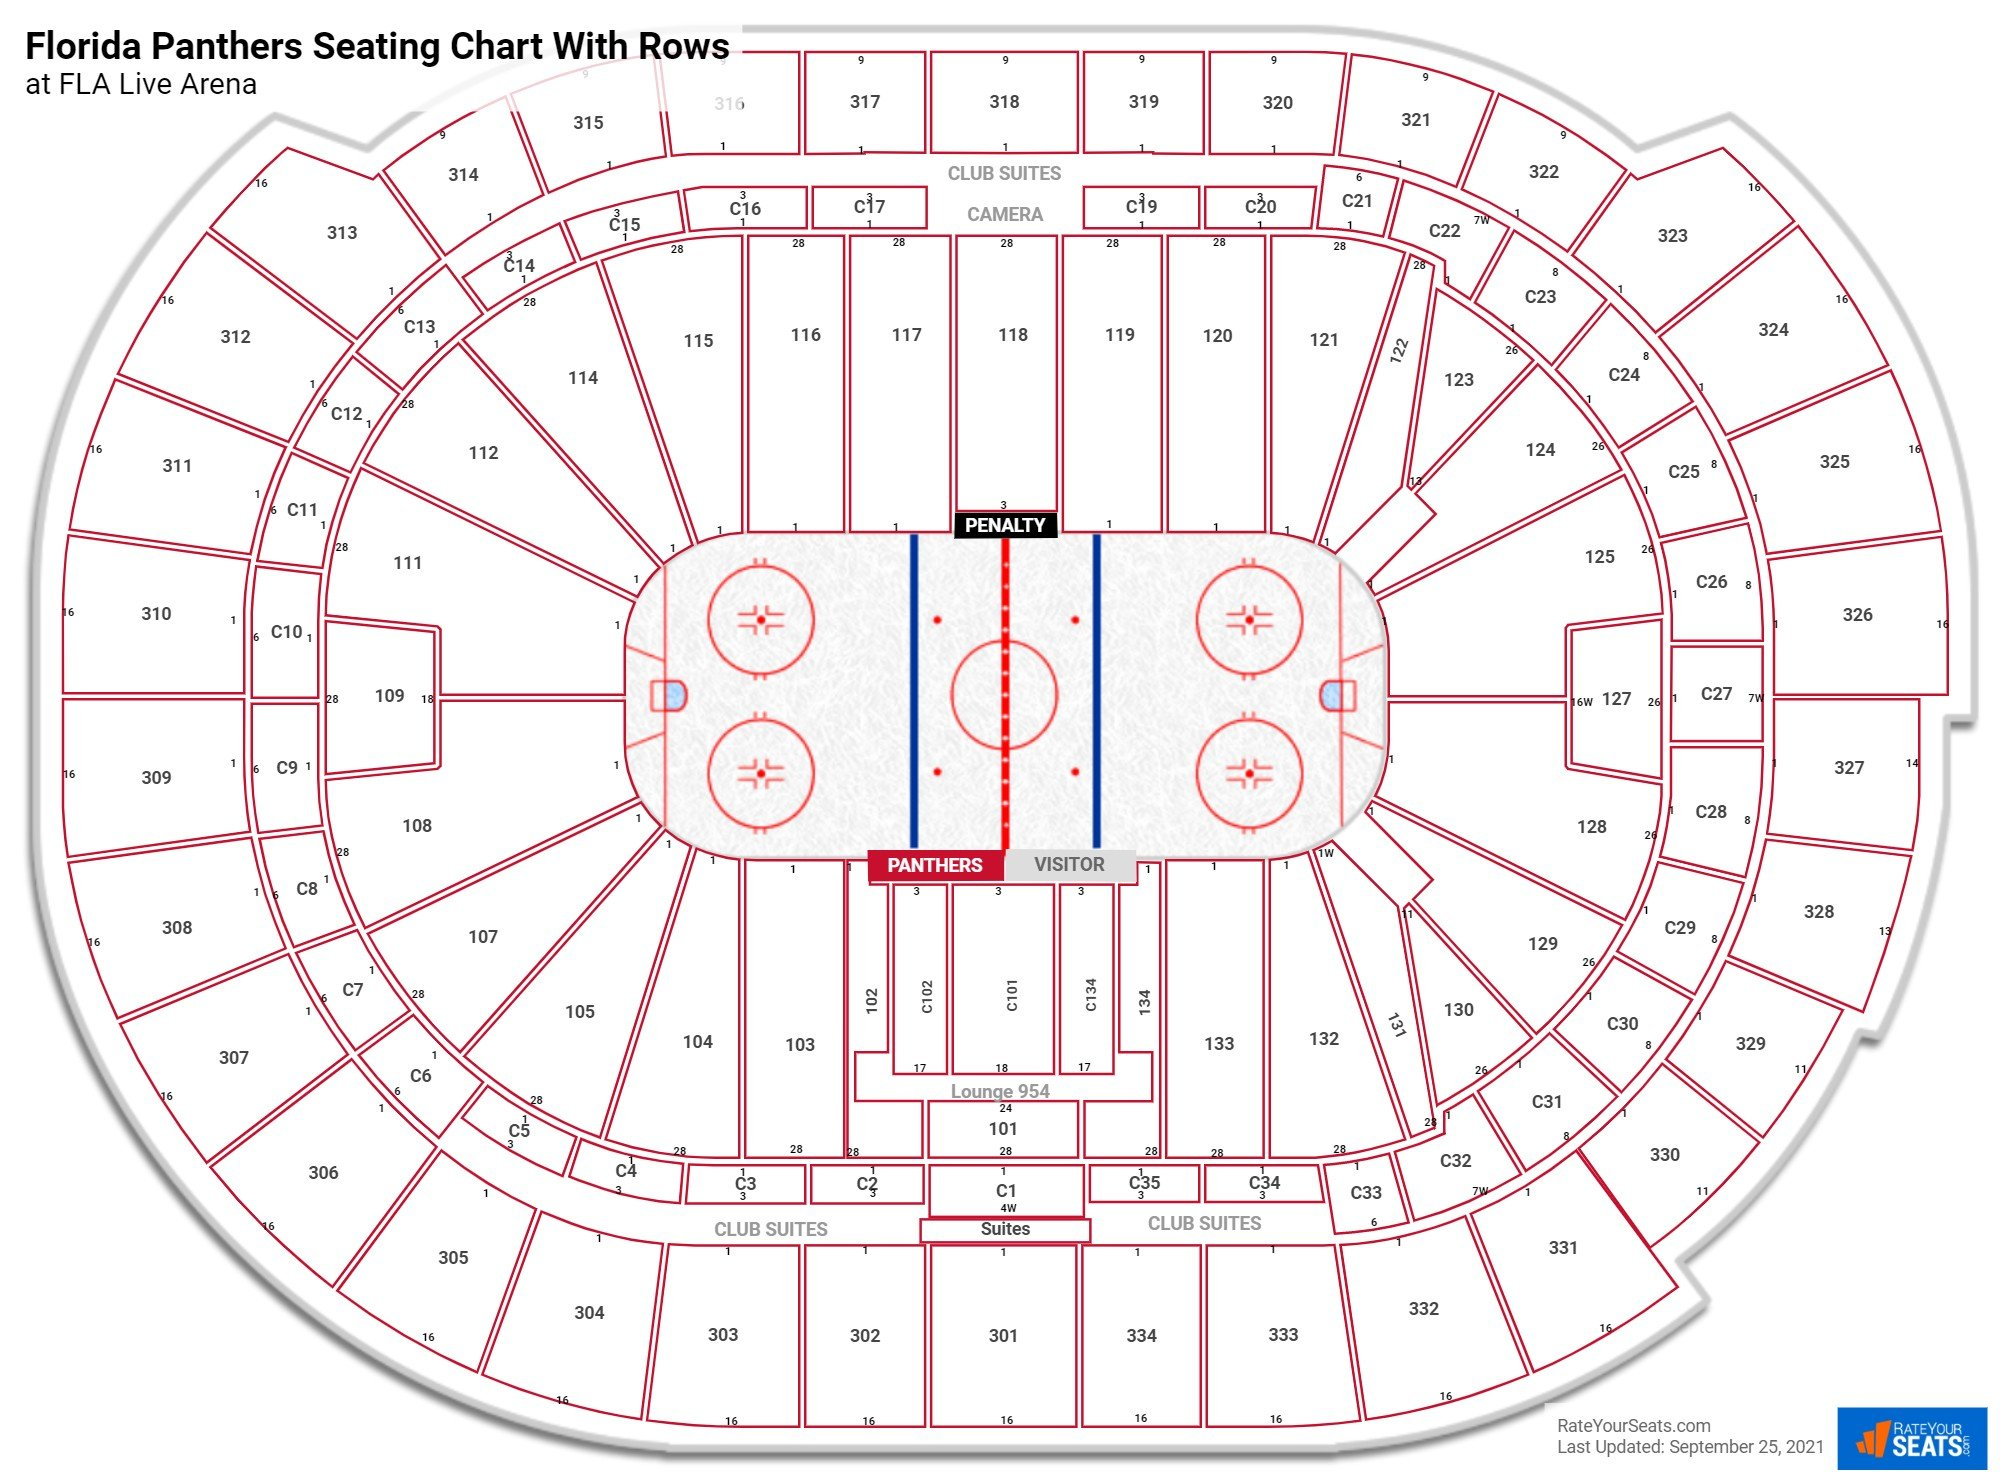 BB&T Center seating chart with rows hockey